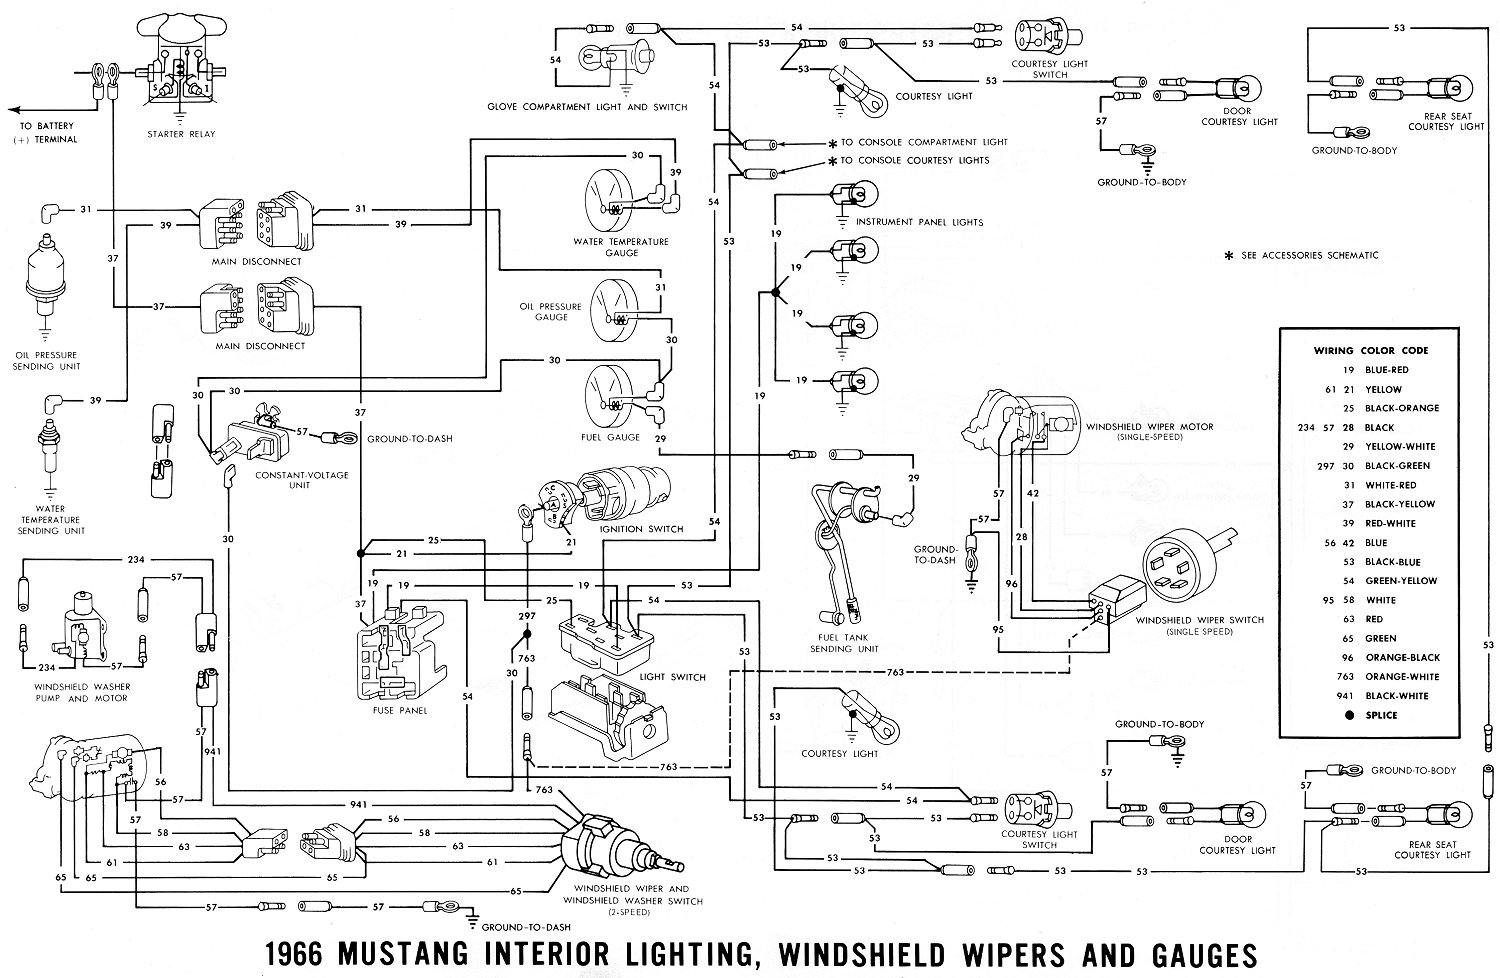 65 mustang fuse block wiring diagrams 20 12 asyaunited de \u2022 1970 Dodge Alternator Wiring 65 mustang fuse box diagram wiring diagram rh 03 ansolsolder co 67 mustang wiring diagram 65 mustang alternator wiring diagram